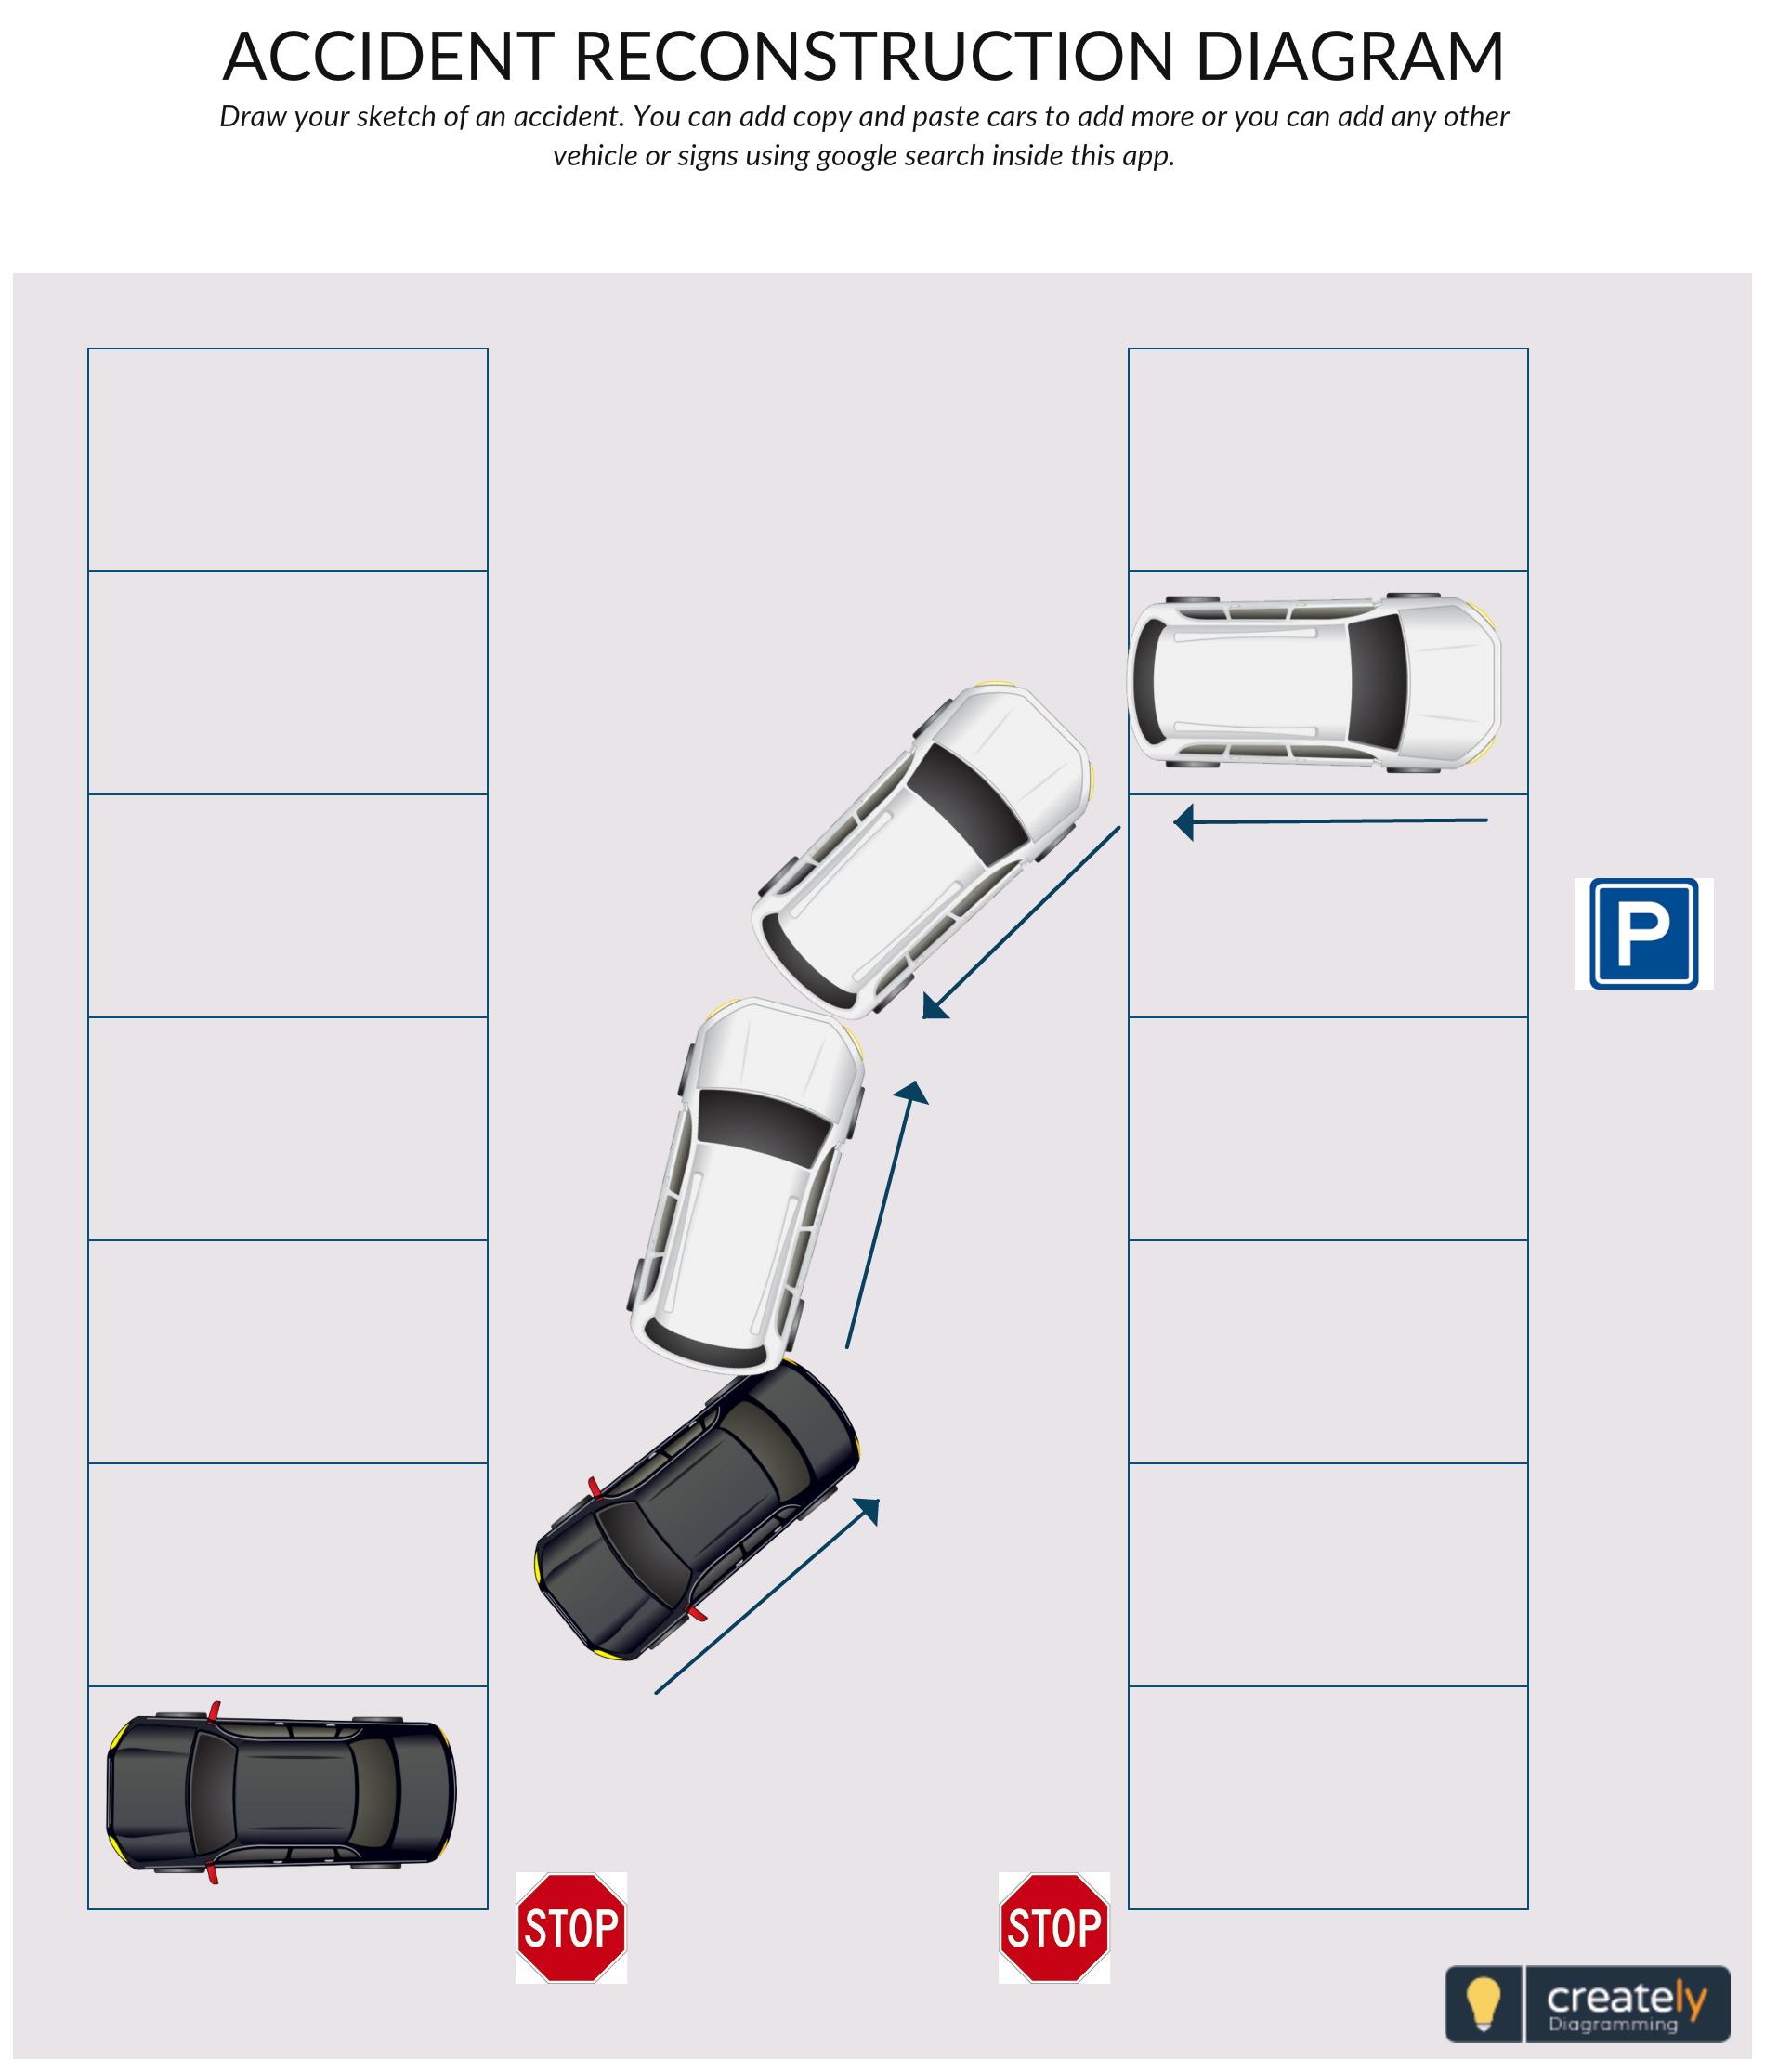 small resolution of accident reconstruction diagram helps you sketch the sequence of events that lead to the accident and